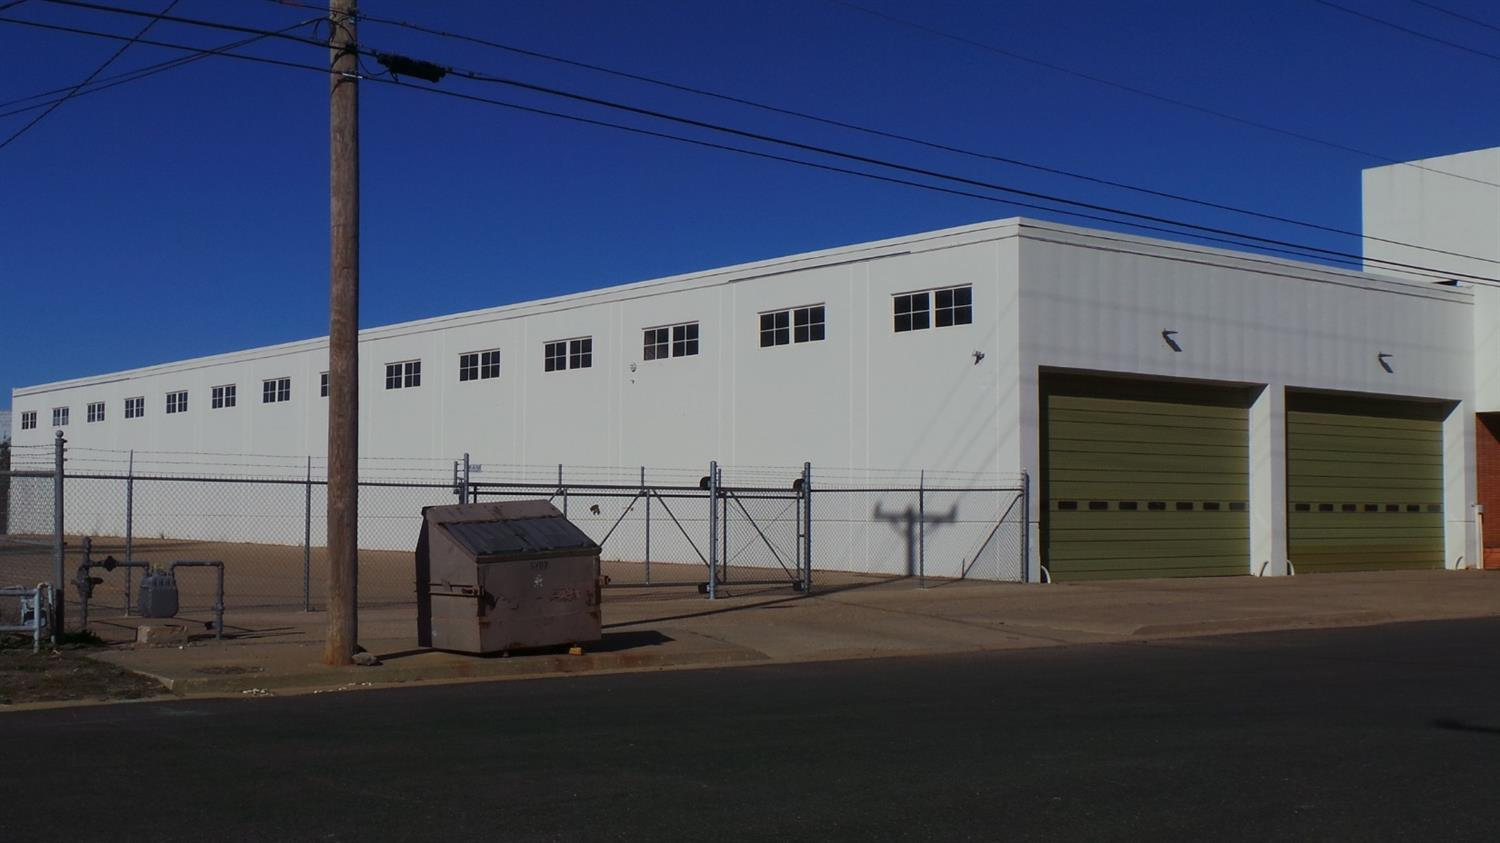 Outstanding 31,500 SF office / warehouse for sale with two indoor dock high doors. As of 2012, there has been a new roof added, new HVAC, all new security system and fenced parking / stack lot. This property is for sale or lease. Year Built: 1956  Remodeled: 2012; Entire Building is Dock High; Fire Sprinkler System; 4,000 SF Office Area; Open Concept, Modern Offices; Two Conference Rooms; 14' X 25' Overhead Doors; Secured Vault; 16' Ceiling Height